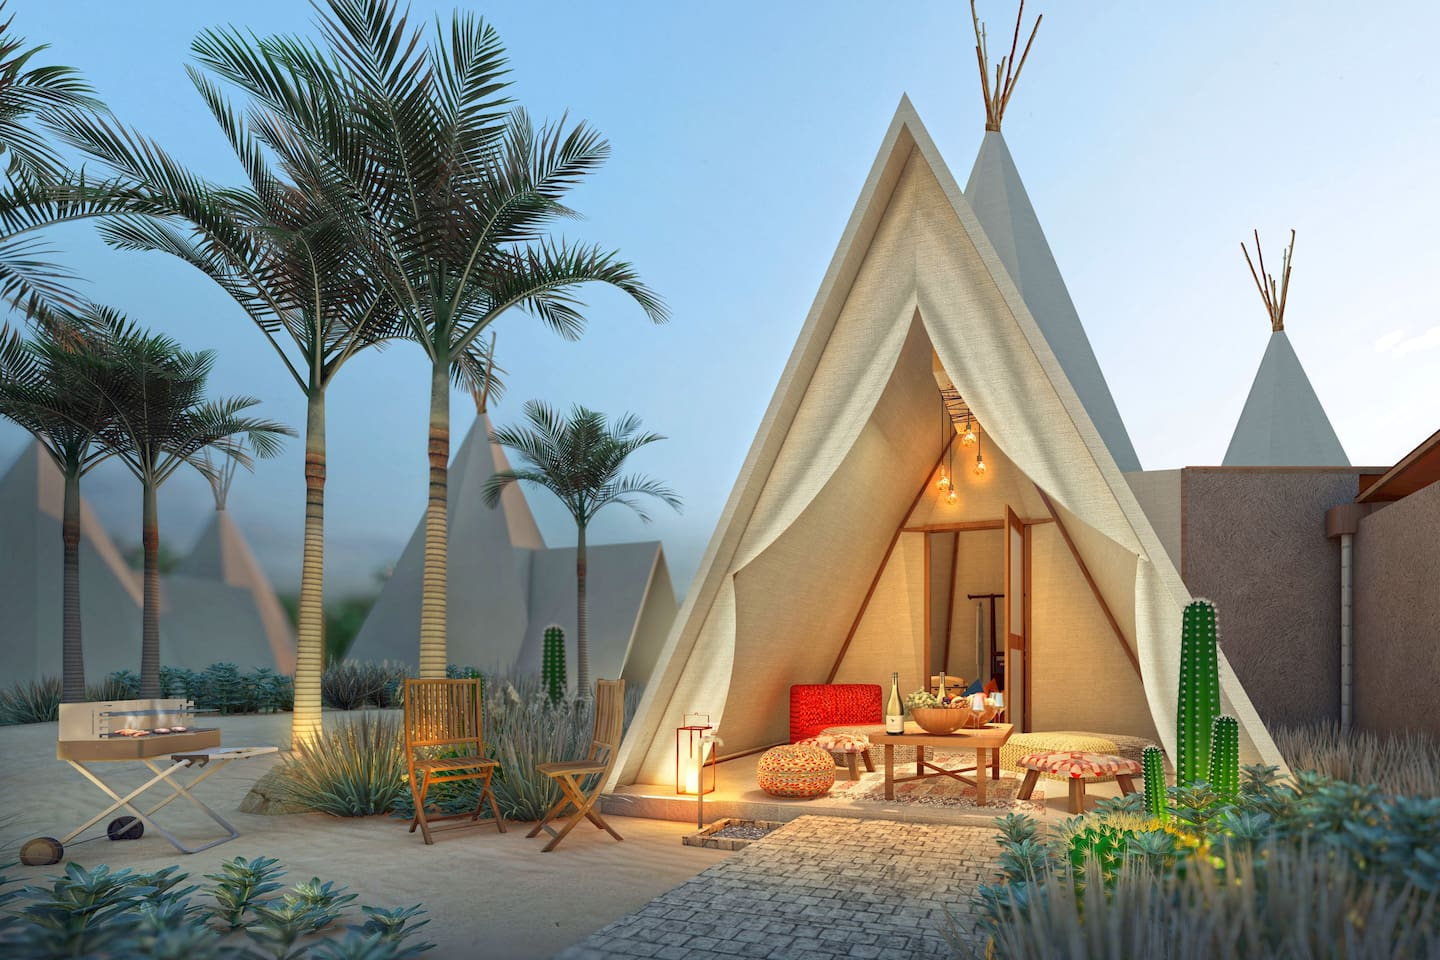 Our deluxe teepee-style tents embody comfort at its finest with a luxurious enclosed patio, private en-suite bathroom, and comfortable linens in our spacious bedroom.